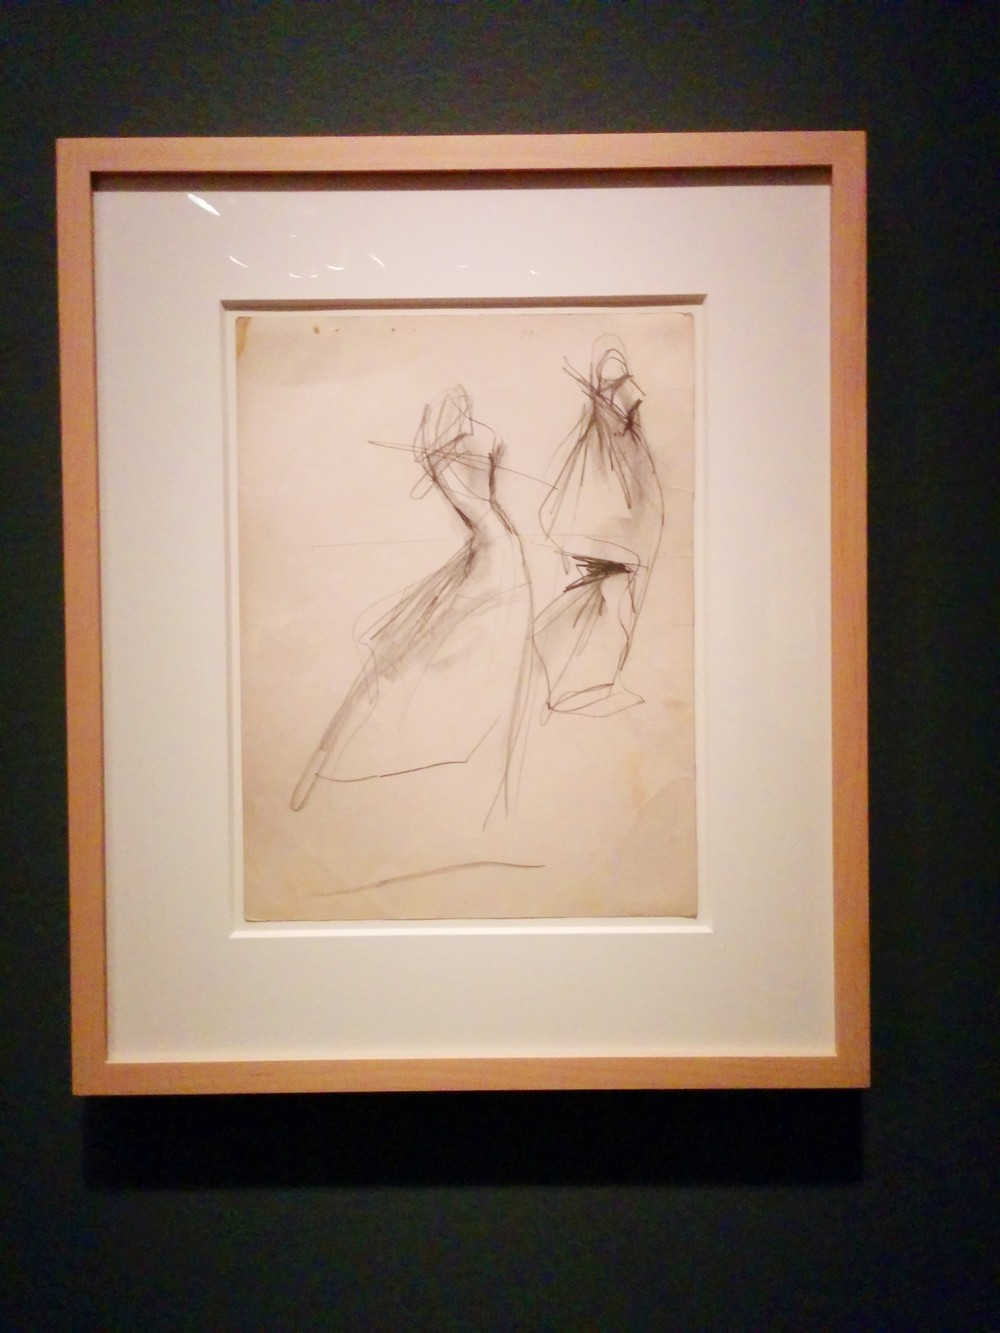 Original sketch by Charles James